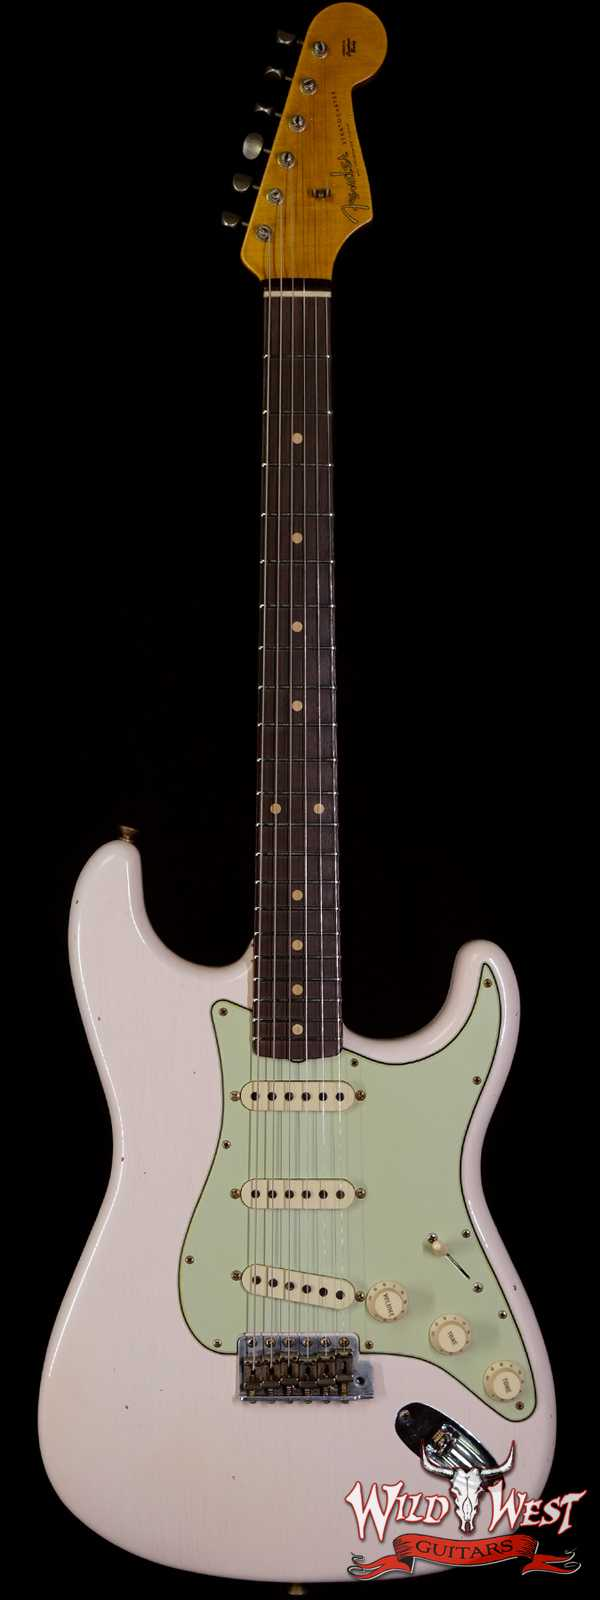 2020 Fender Summer Event LTD Custom Shop 1960 Stratocaster Journeyman Relic Dirty Neck Hand-Wound PUs Super Faded Aged Shell Pink